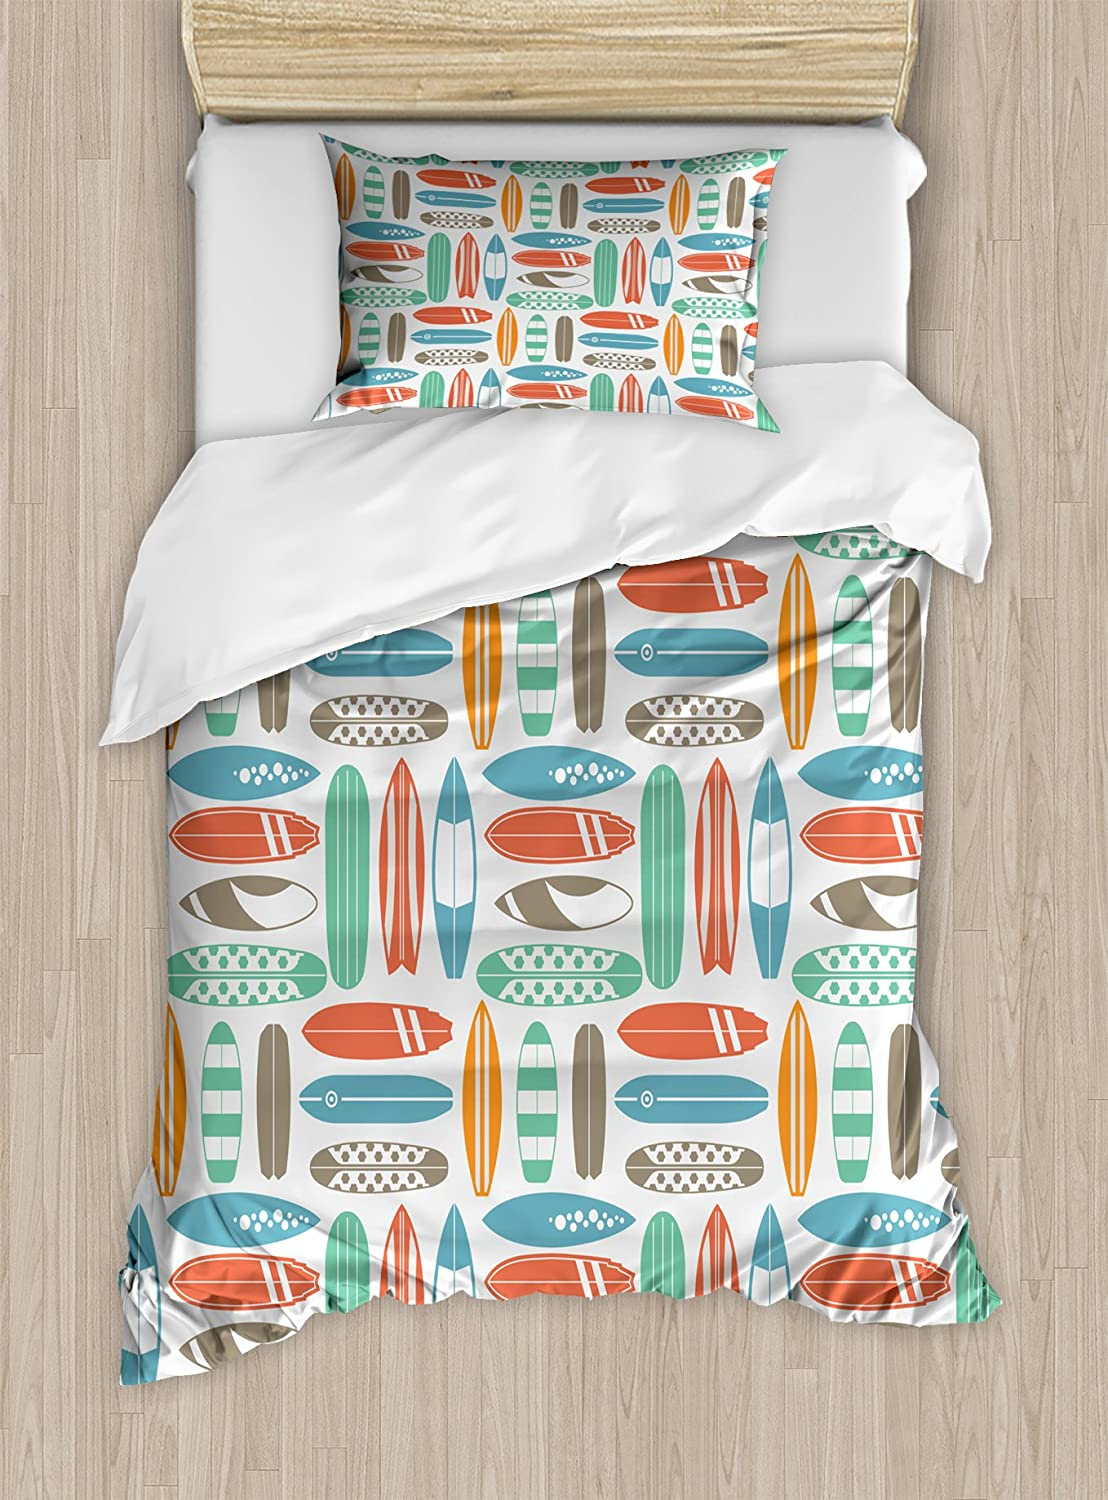 Ambesonne Surfboard Duvet Cover Set, Colorful Surfing Sea Pattern with Summer Travel Illustration in Retro Colors, Decorative 2 Piece Bedding Set with 1 Pillow Sham, Twin Size, Coral Orange